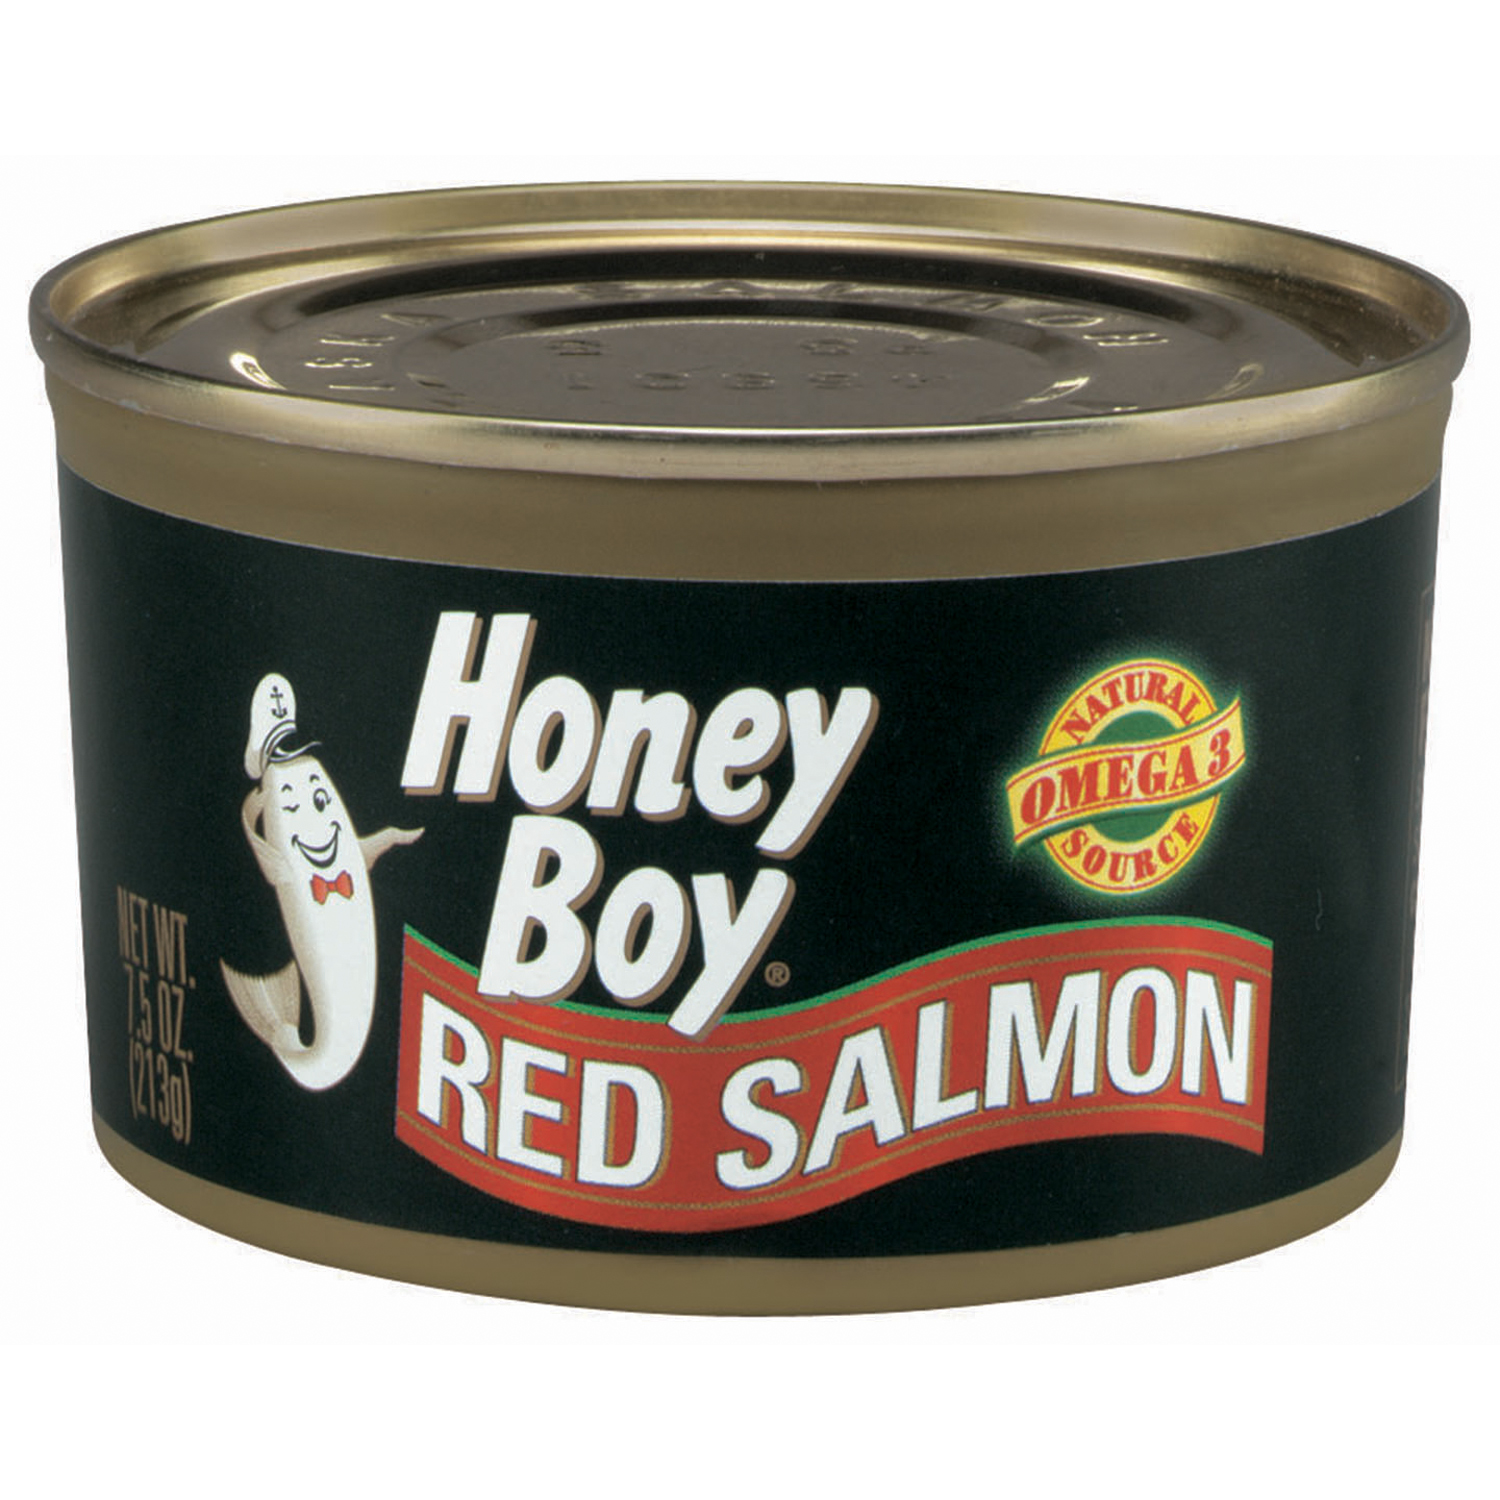 (3 Pack) Honey Boy Red Salmon, 7.5 oz Can